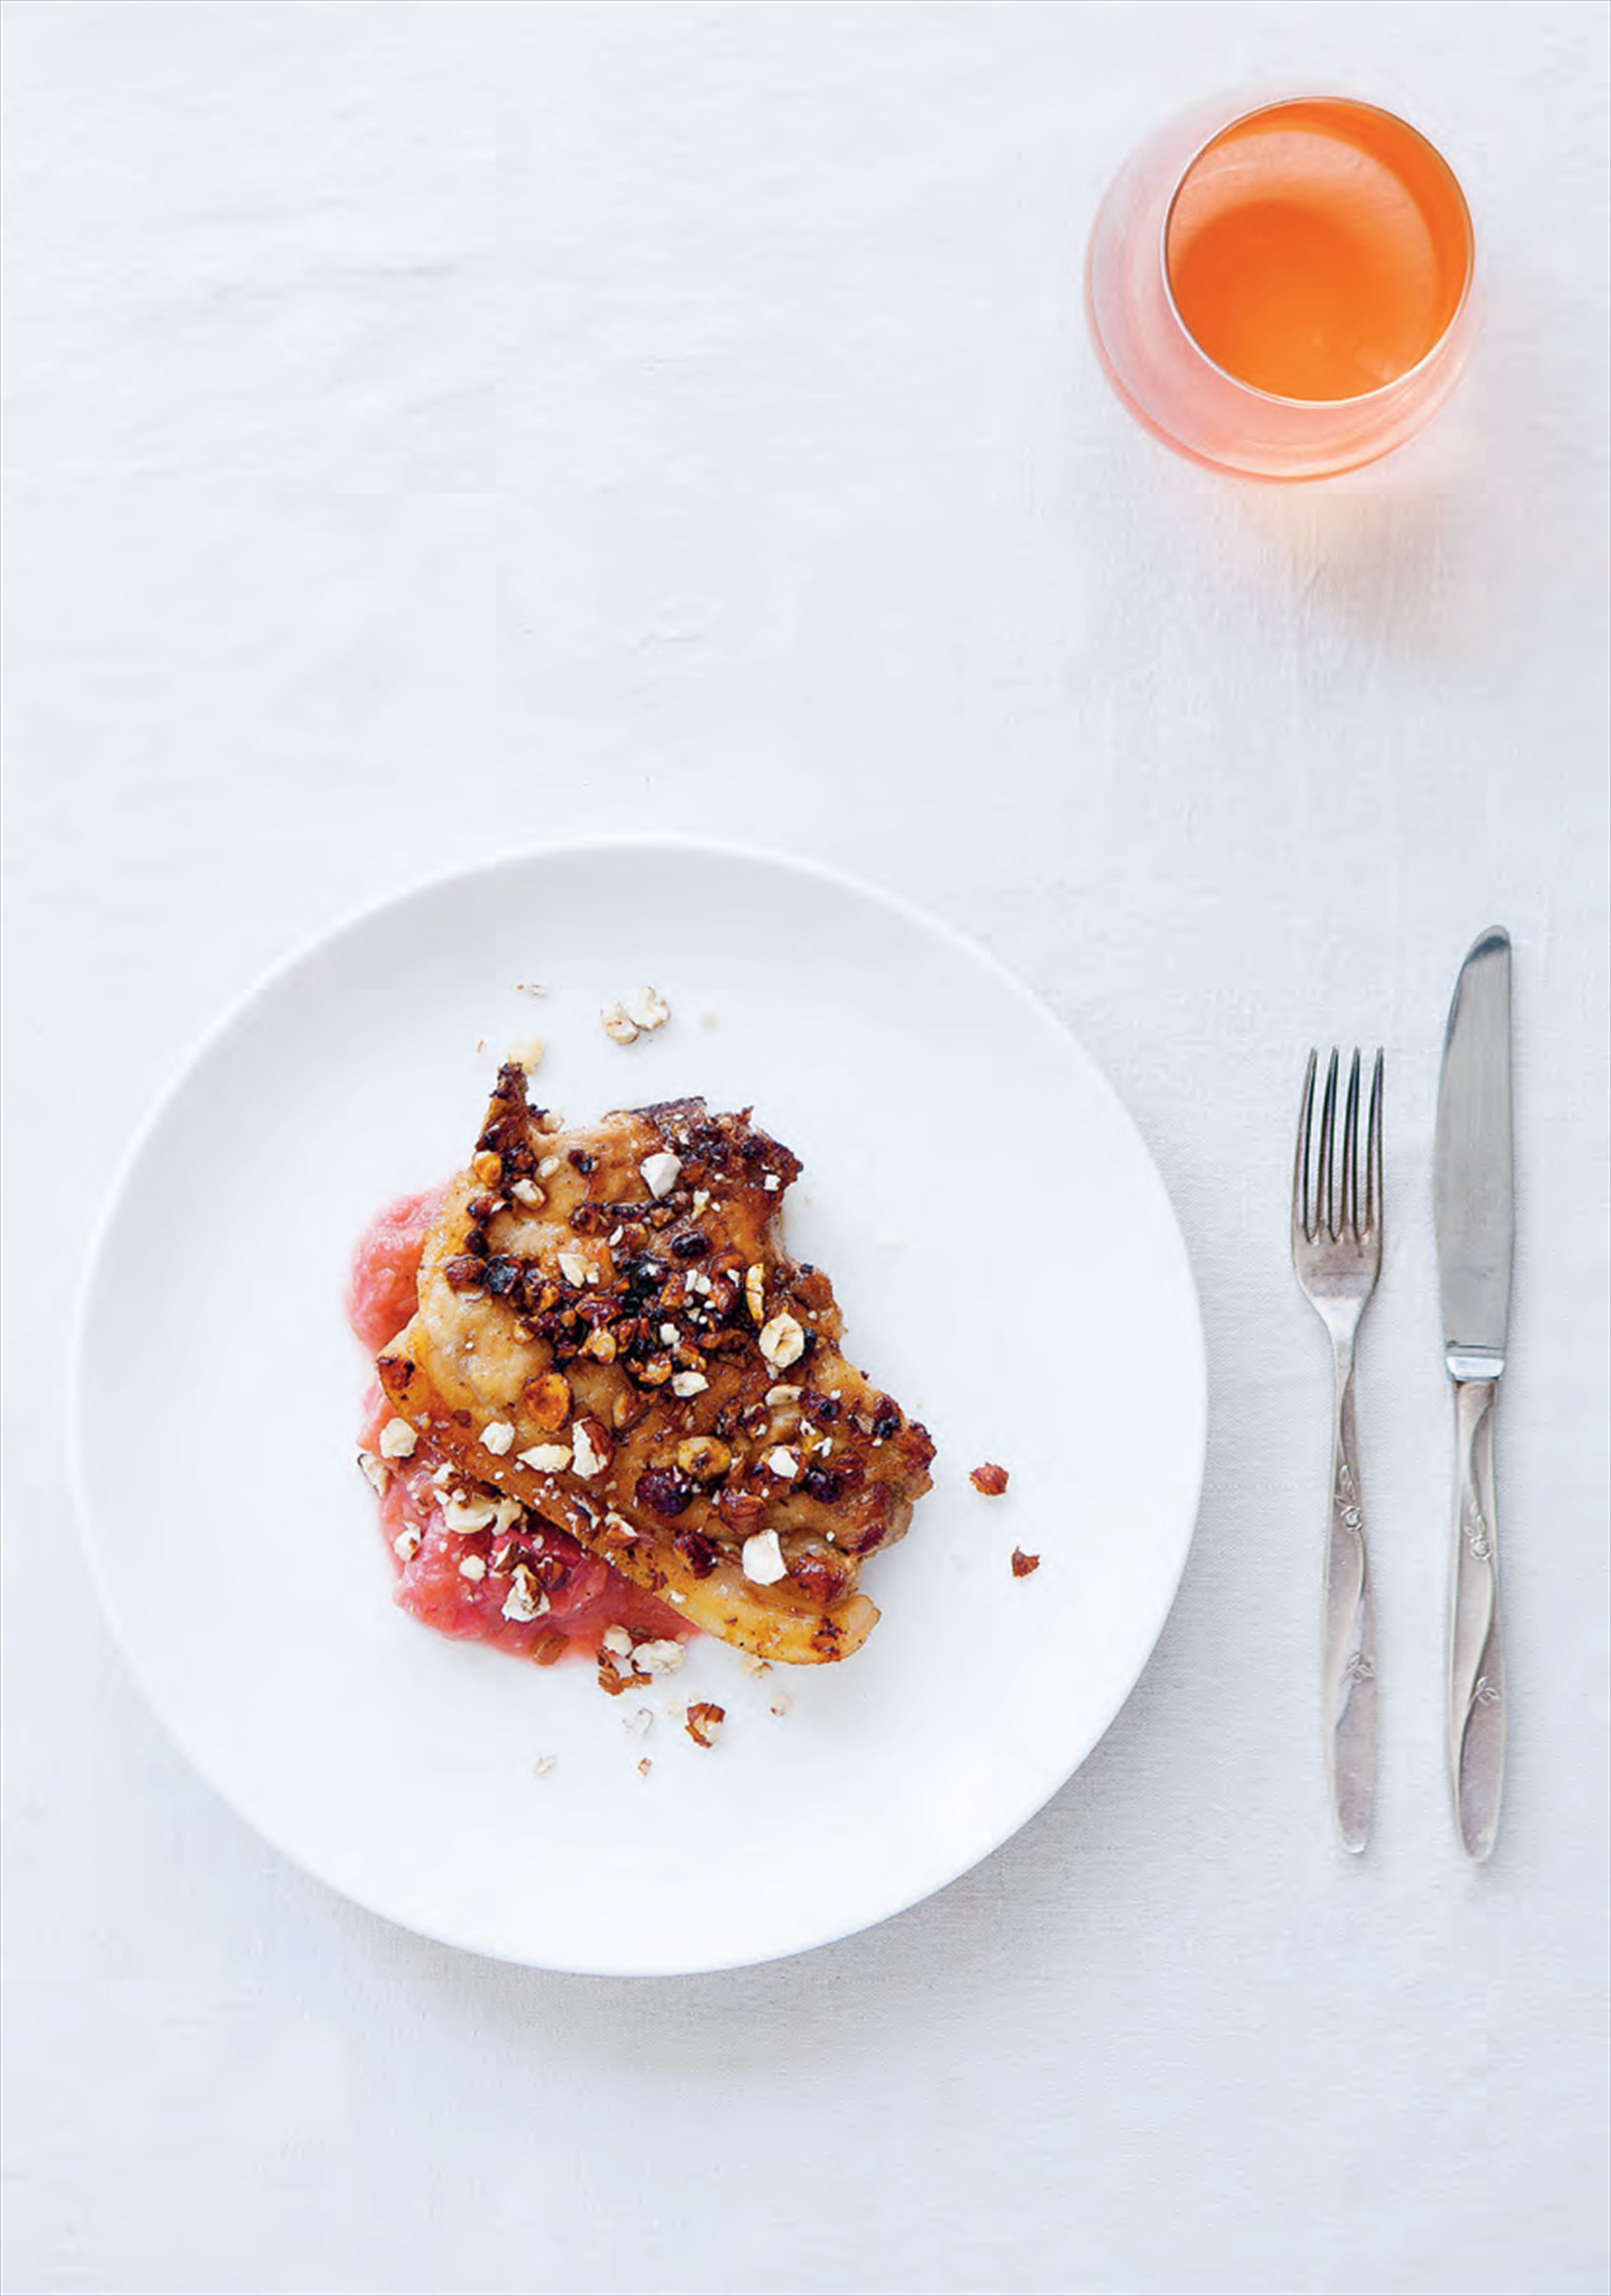 Pork chops with rhubarb, honey, ginger and hazelnuts